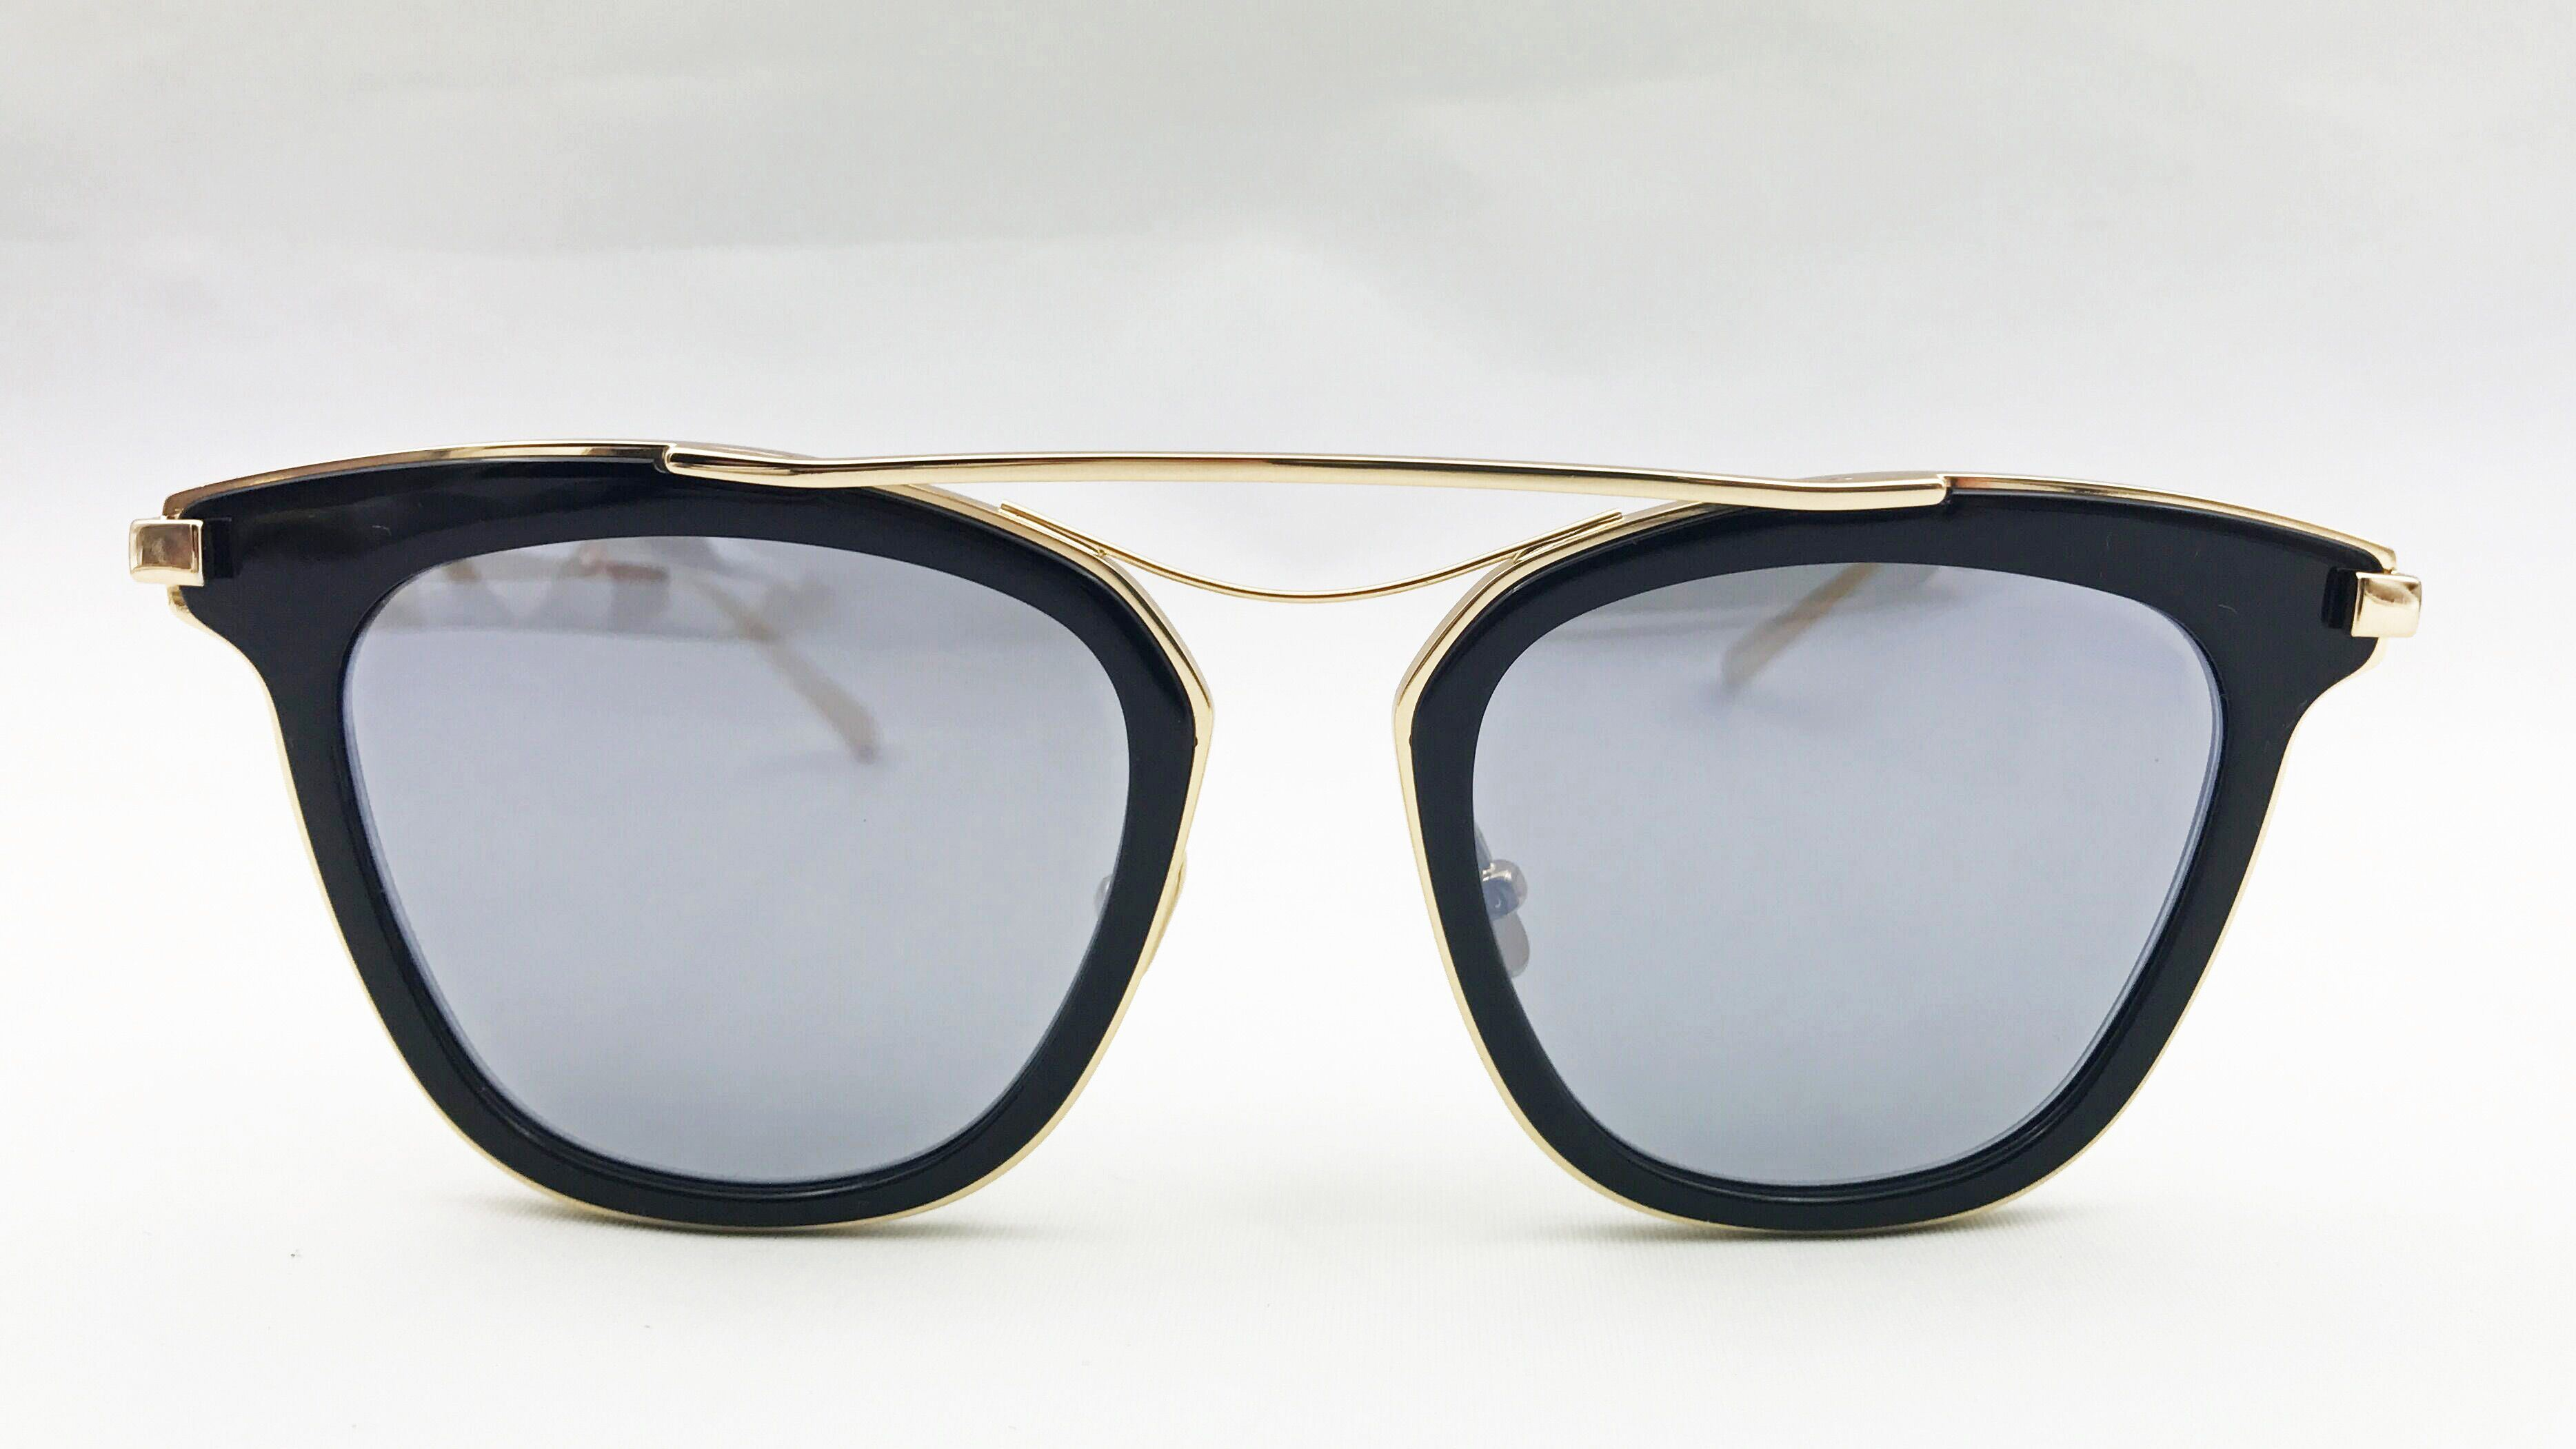 Elegant Black Acetate Eyewear for Lady Block Temple in K. Gold Plating